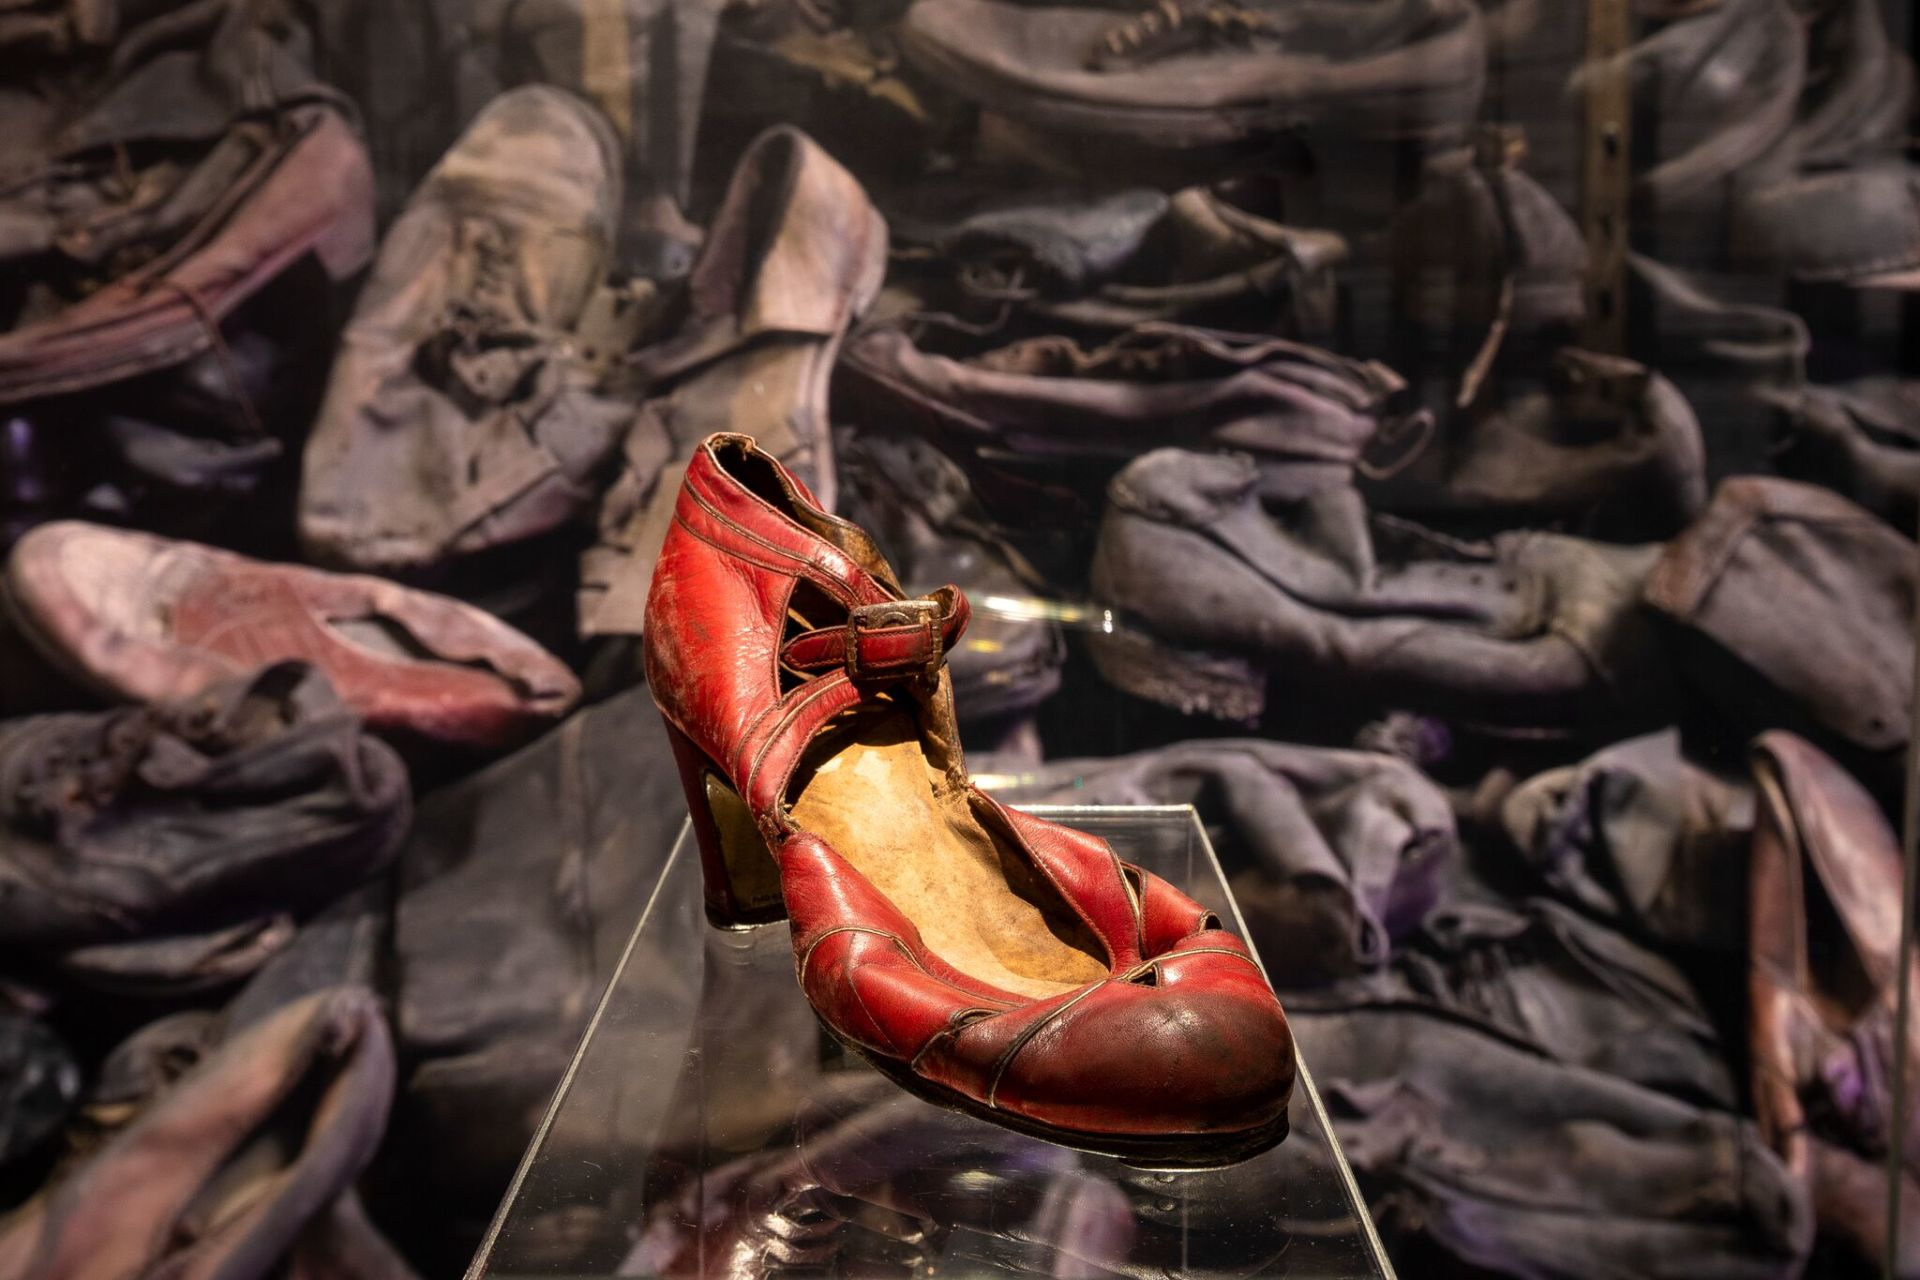 A dress shoe in the exhibition.